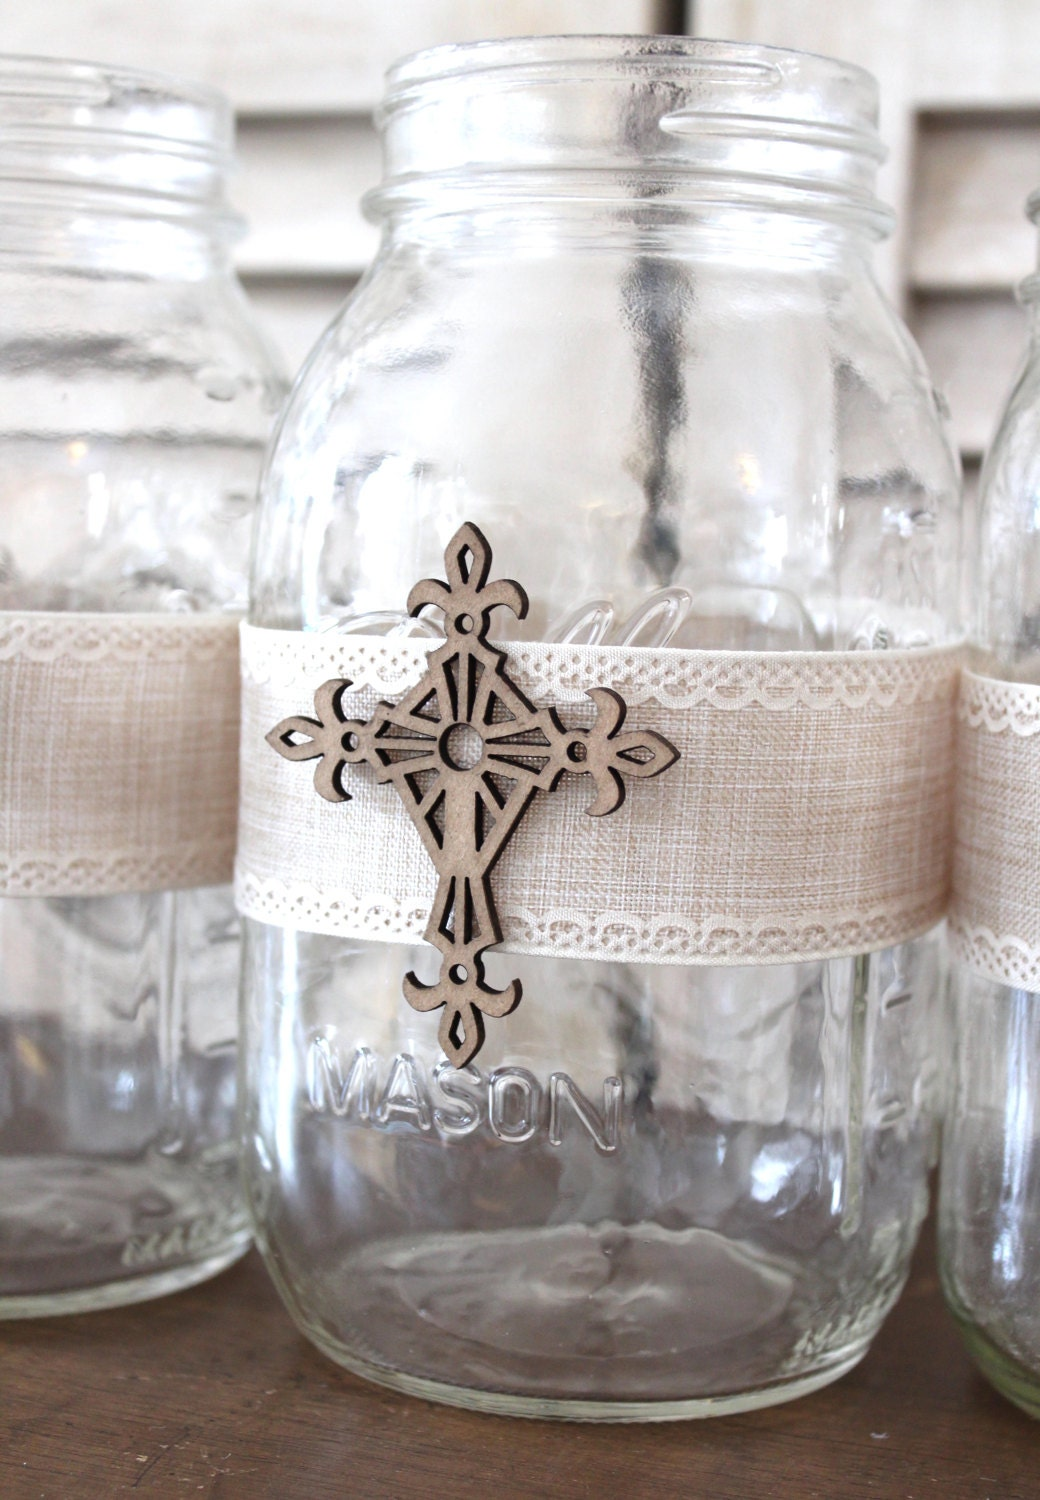 Communion confirmation baptism centerpiece mason jar wrap